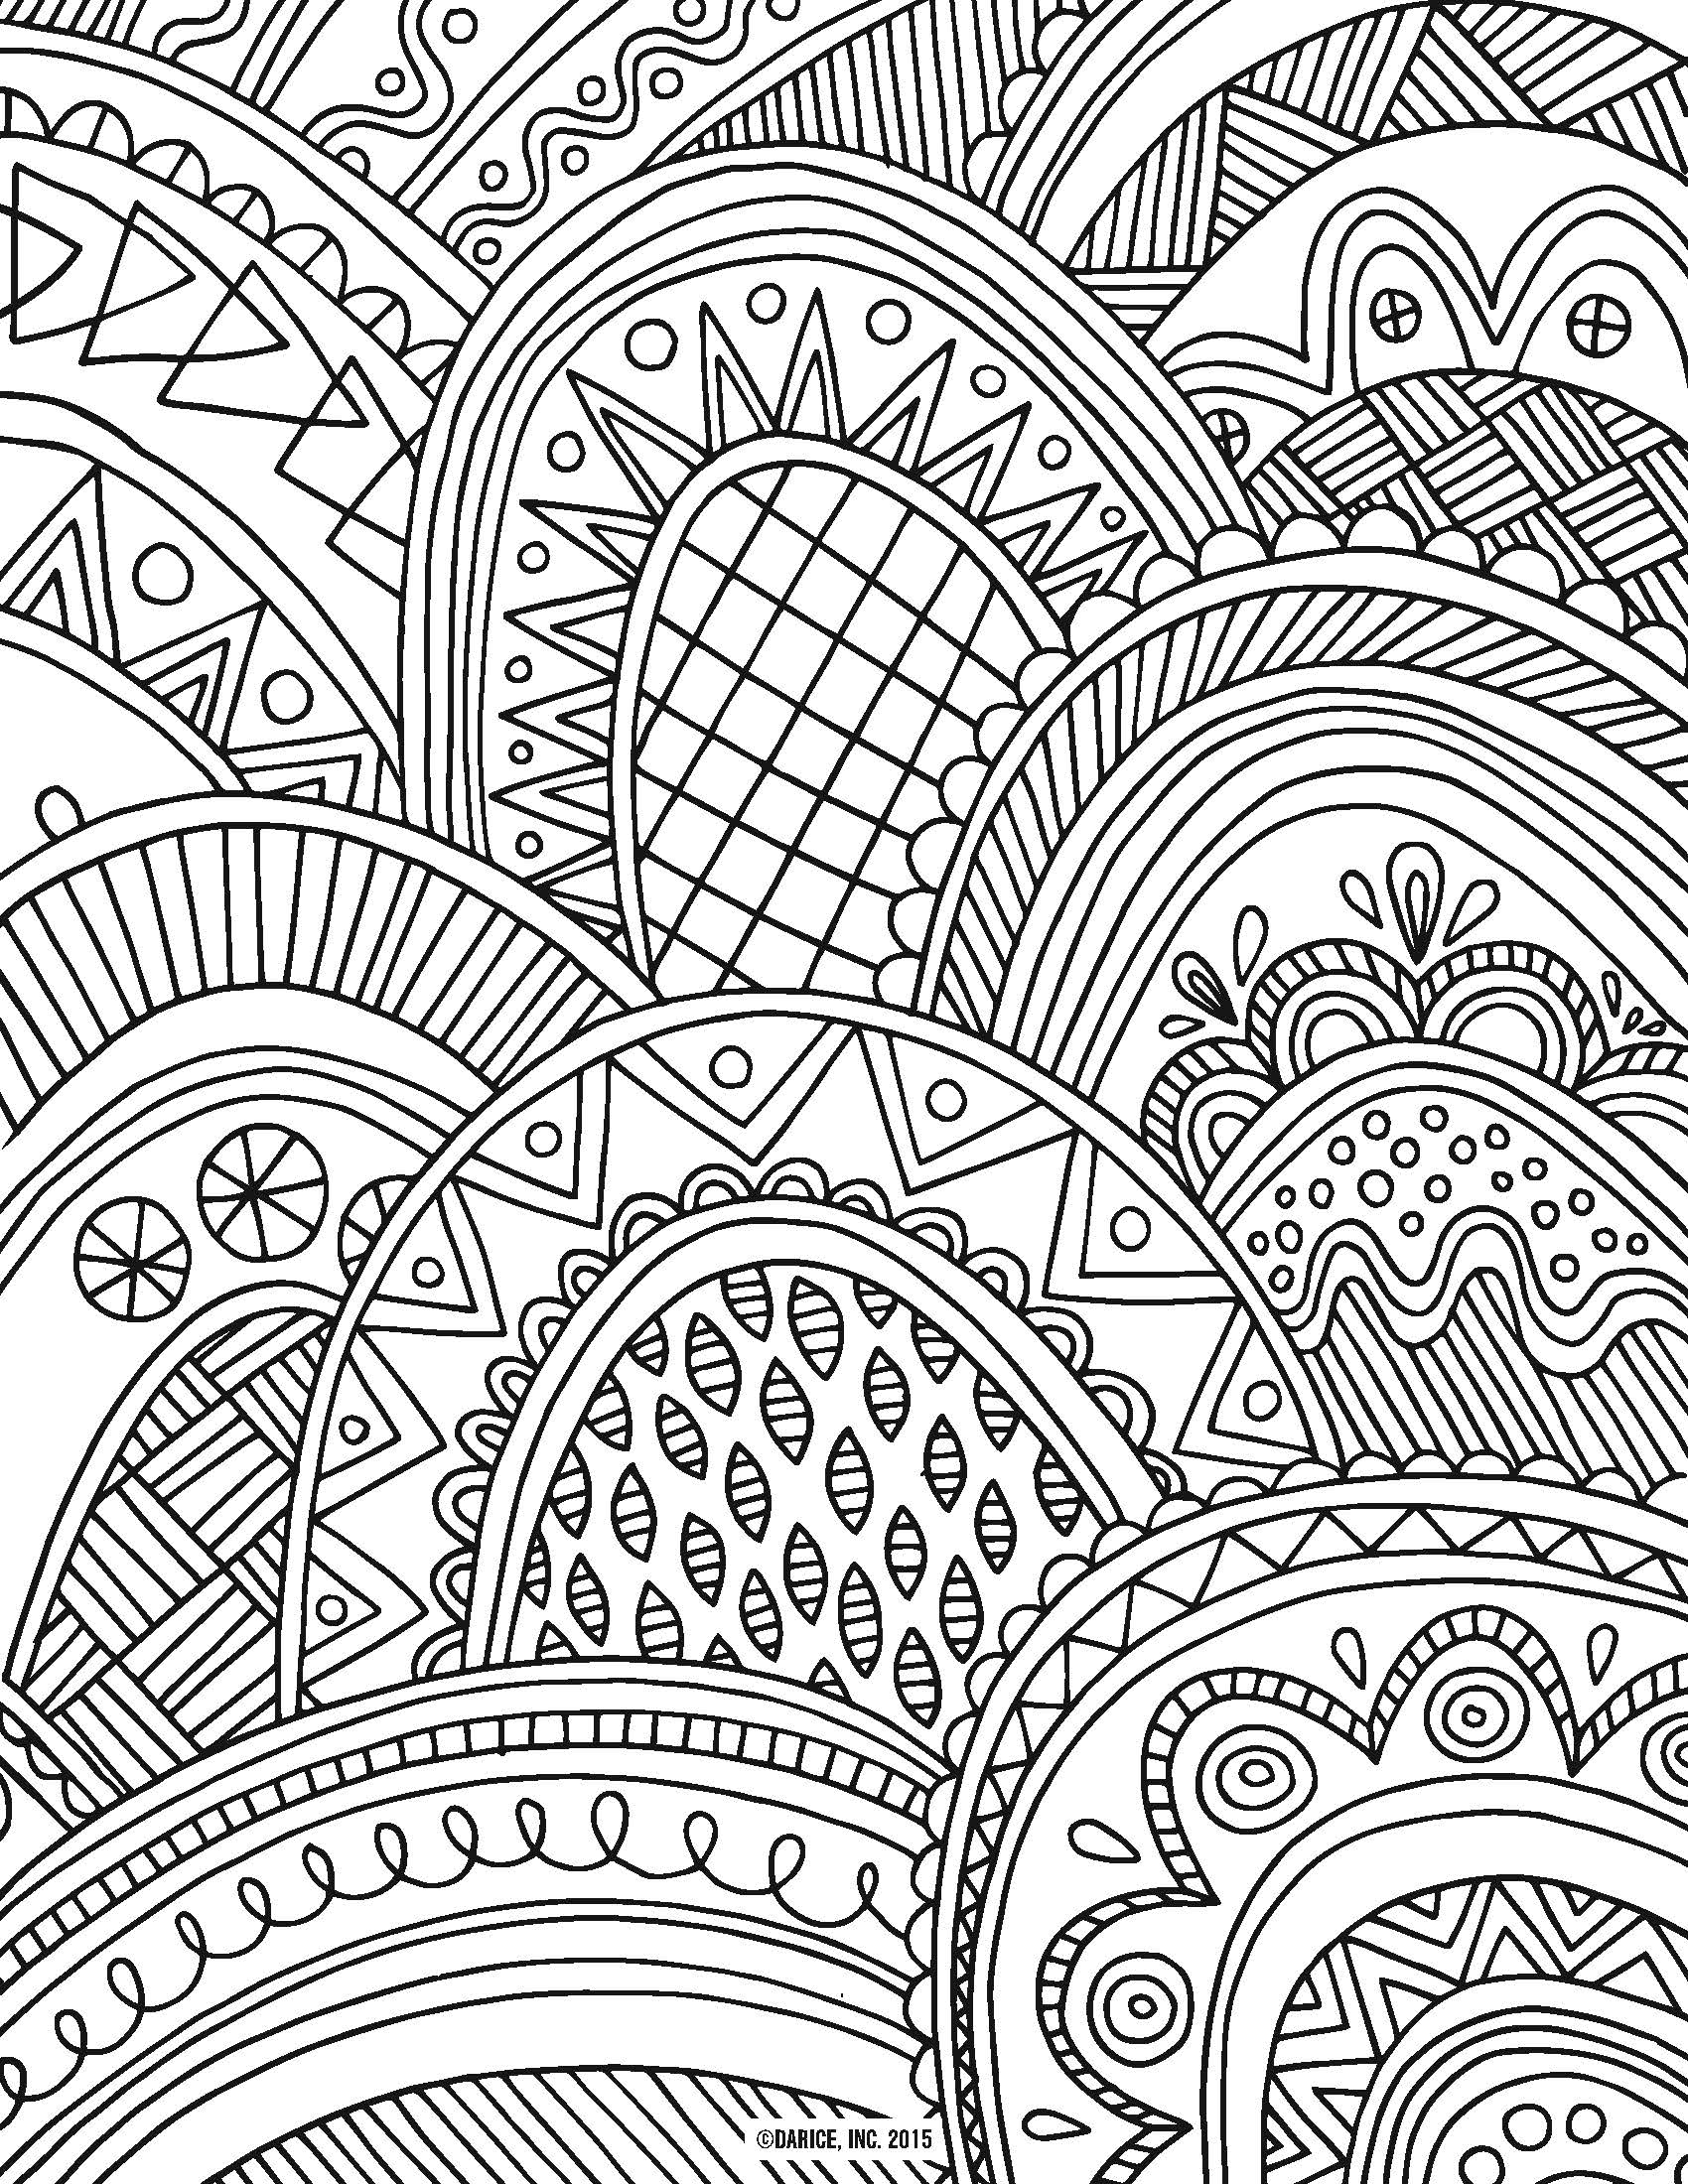 coloring sheet for adults 20 gorgeous free printable adult coloring pages page 3 for adults sheet coloring